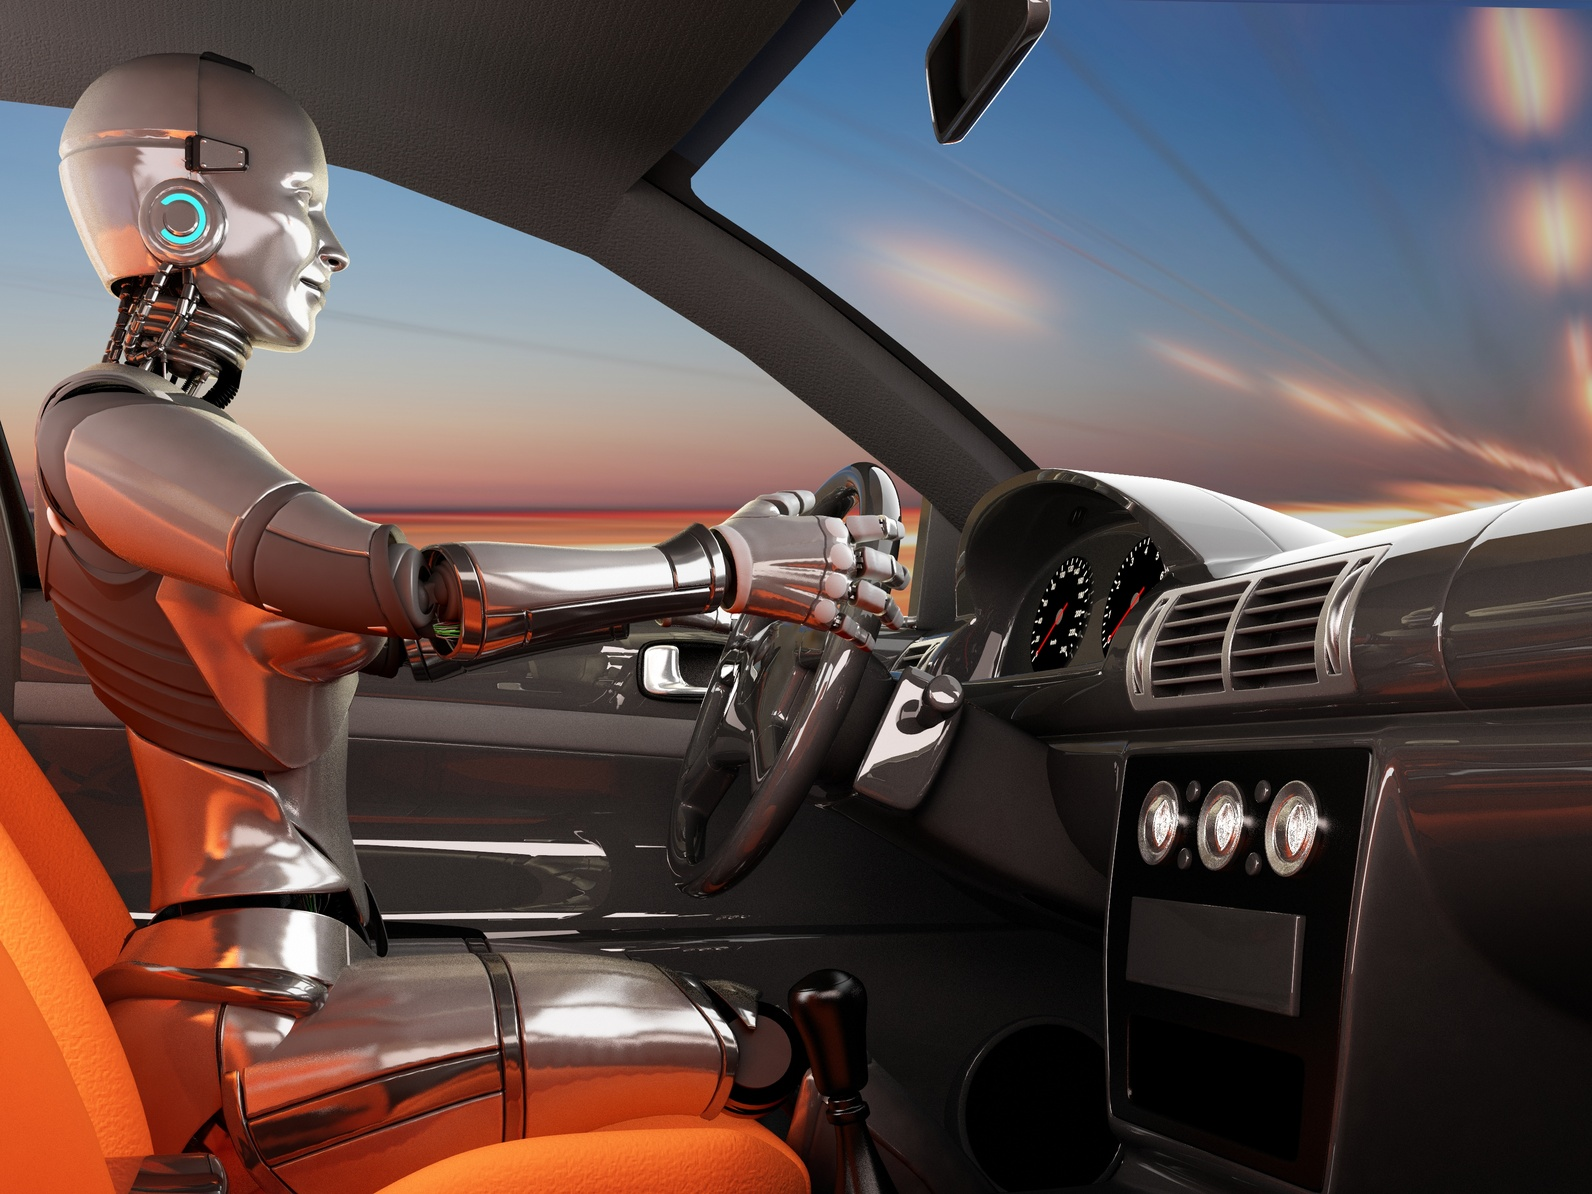 Car driven by robot